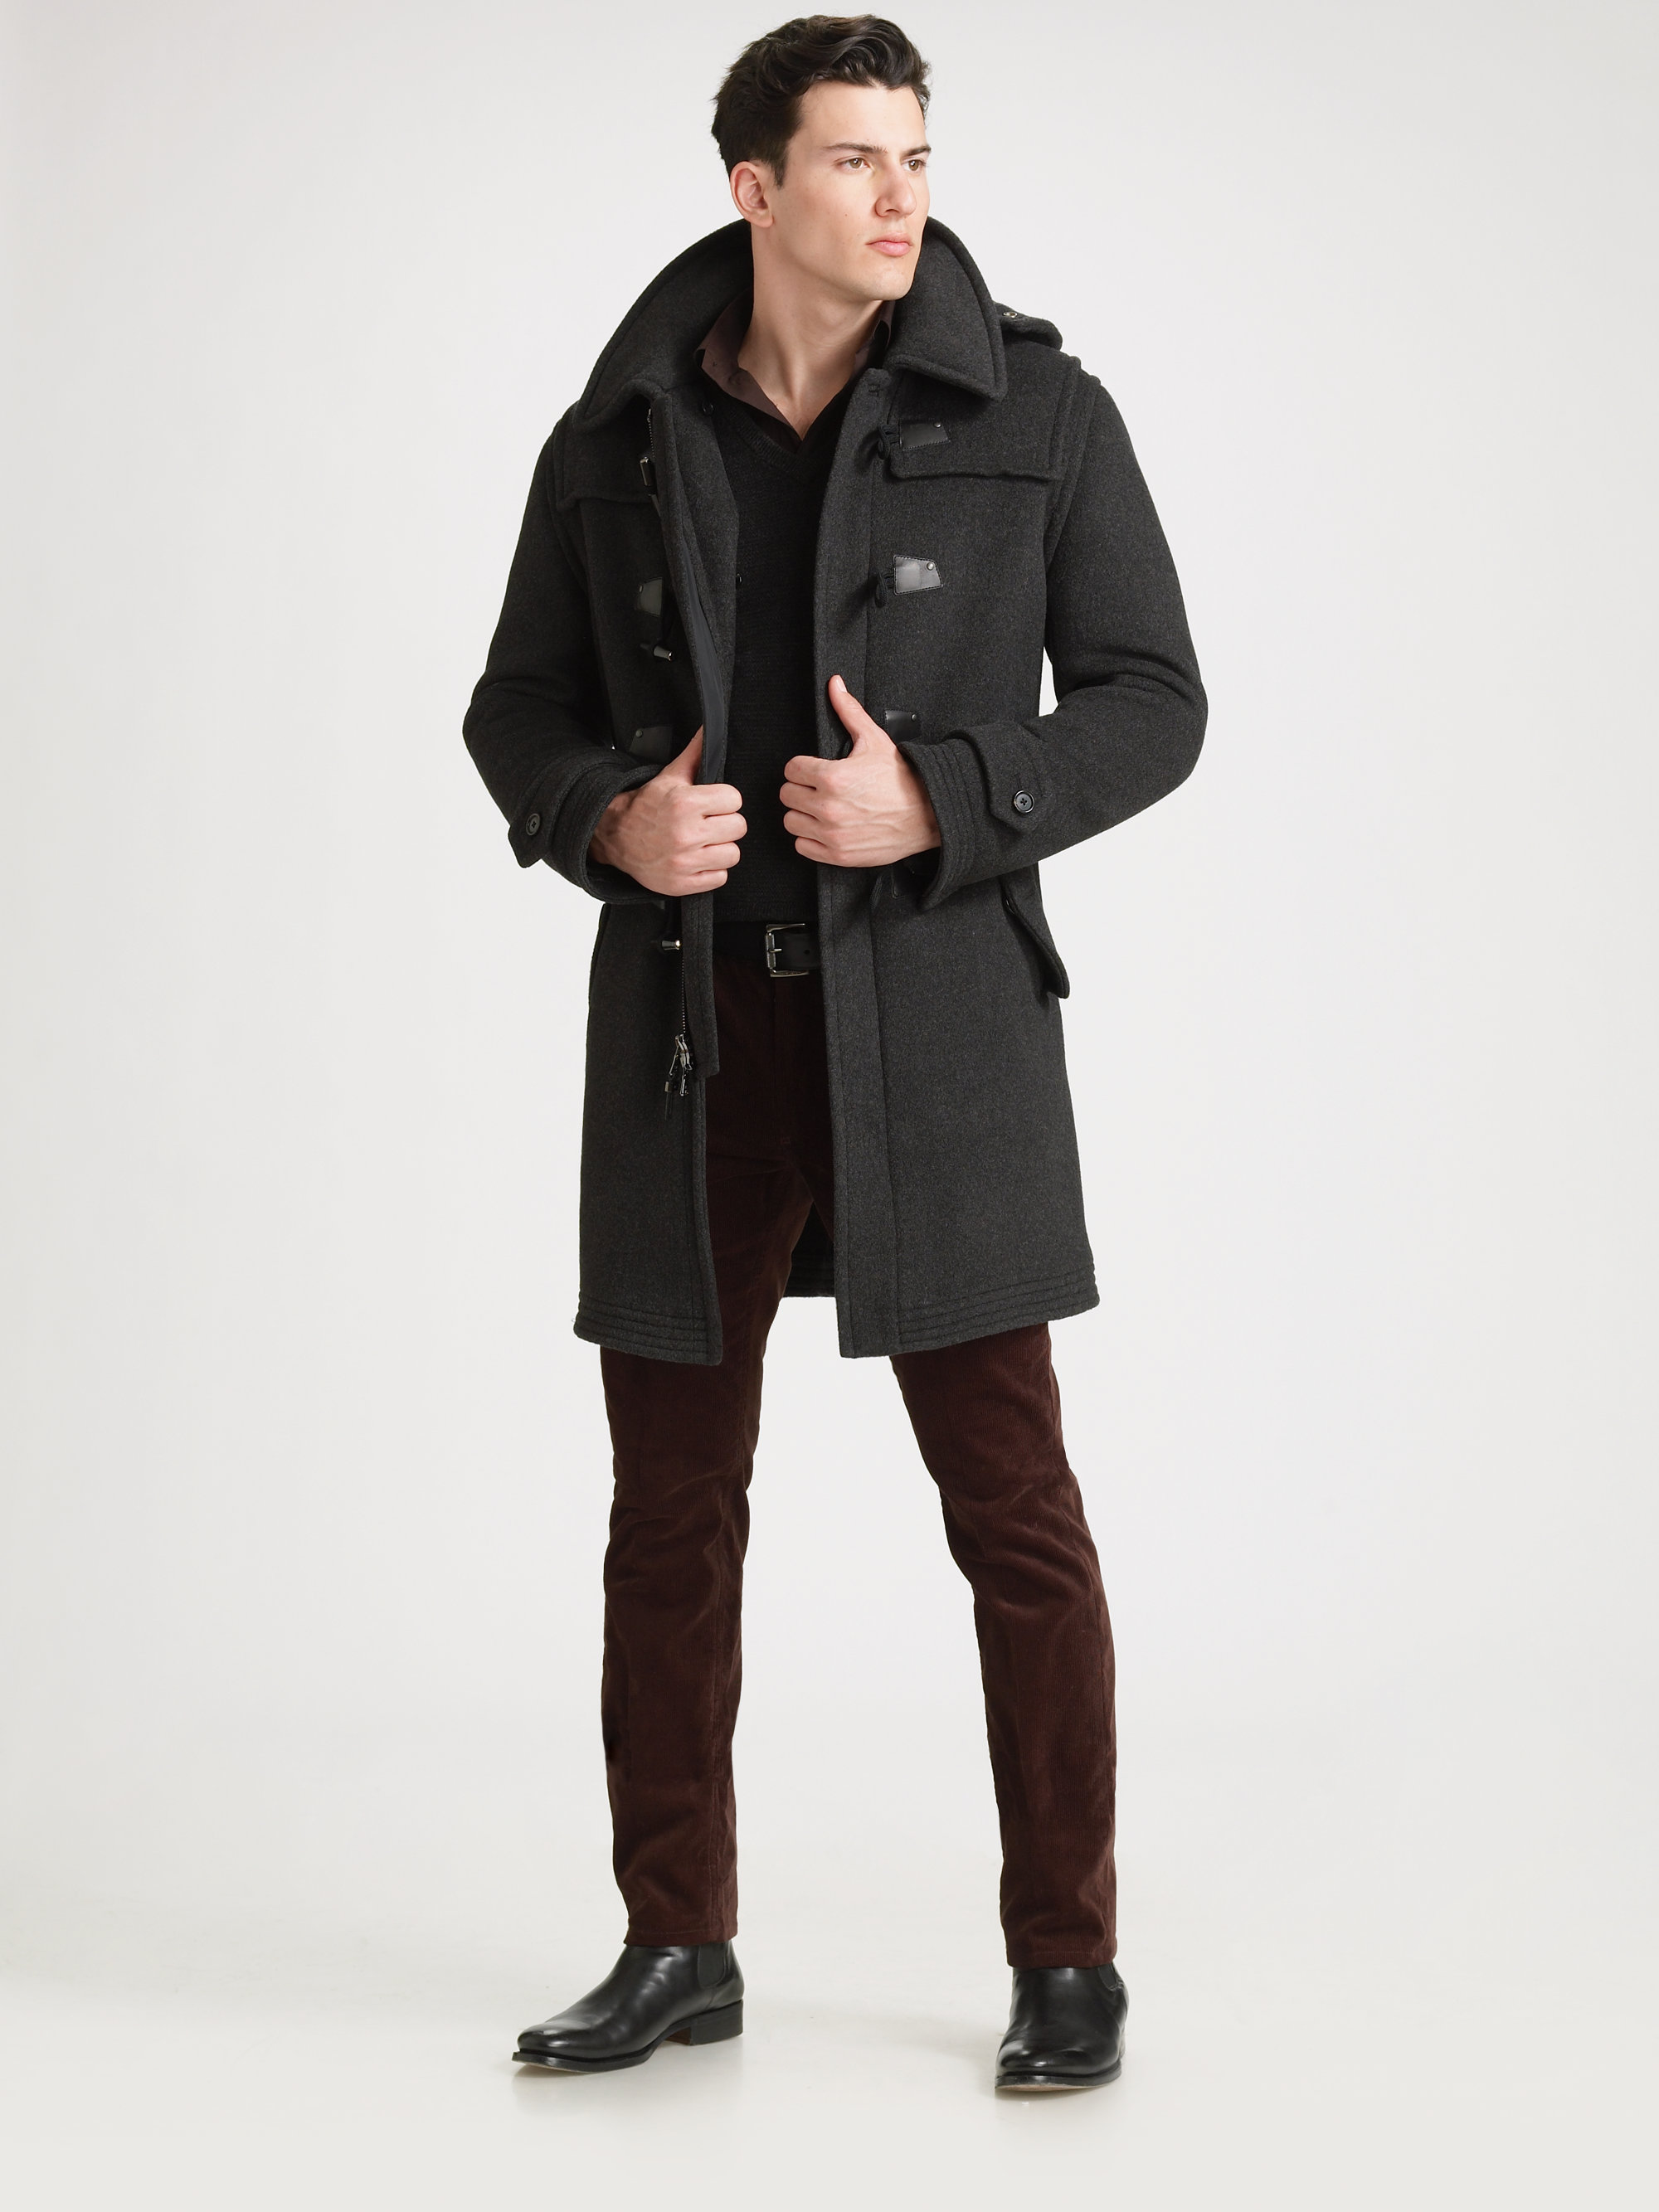 Ralph lauren black label Alpine Toggle Coat in Gray for Men | Lyst